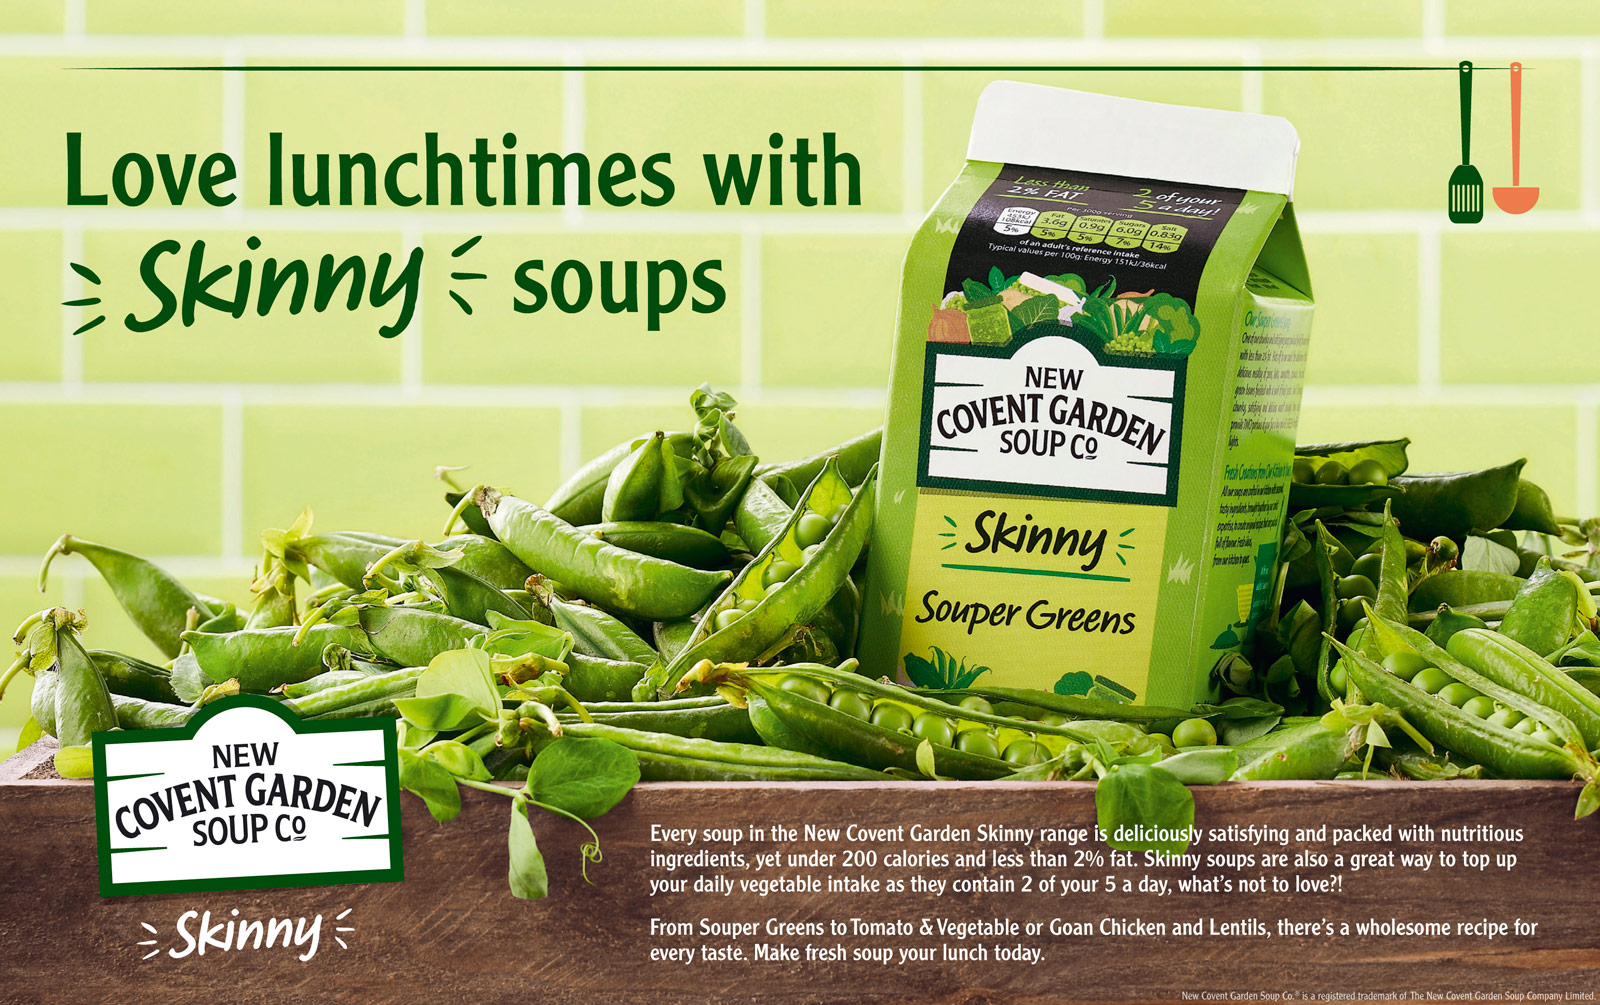 New Covent Garden Soup Co advert for skinny soups